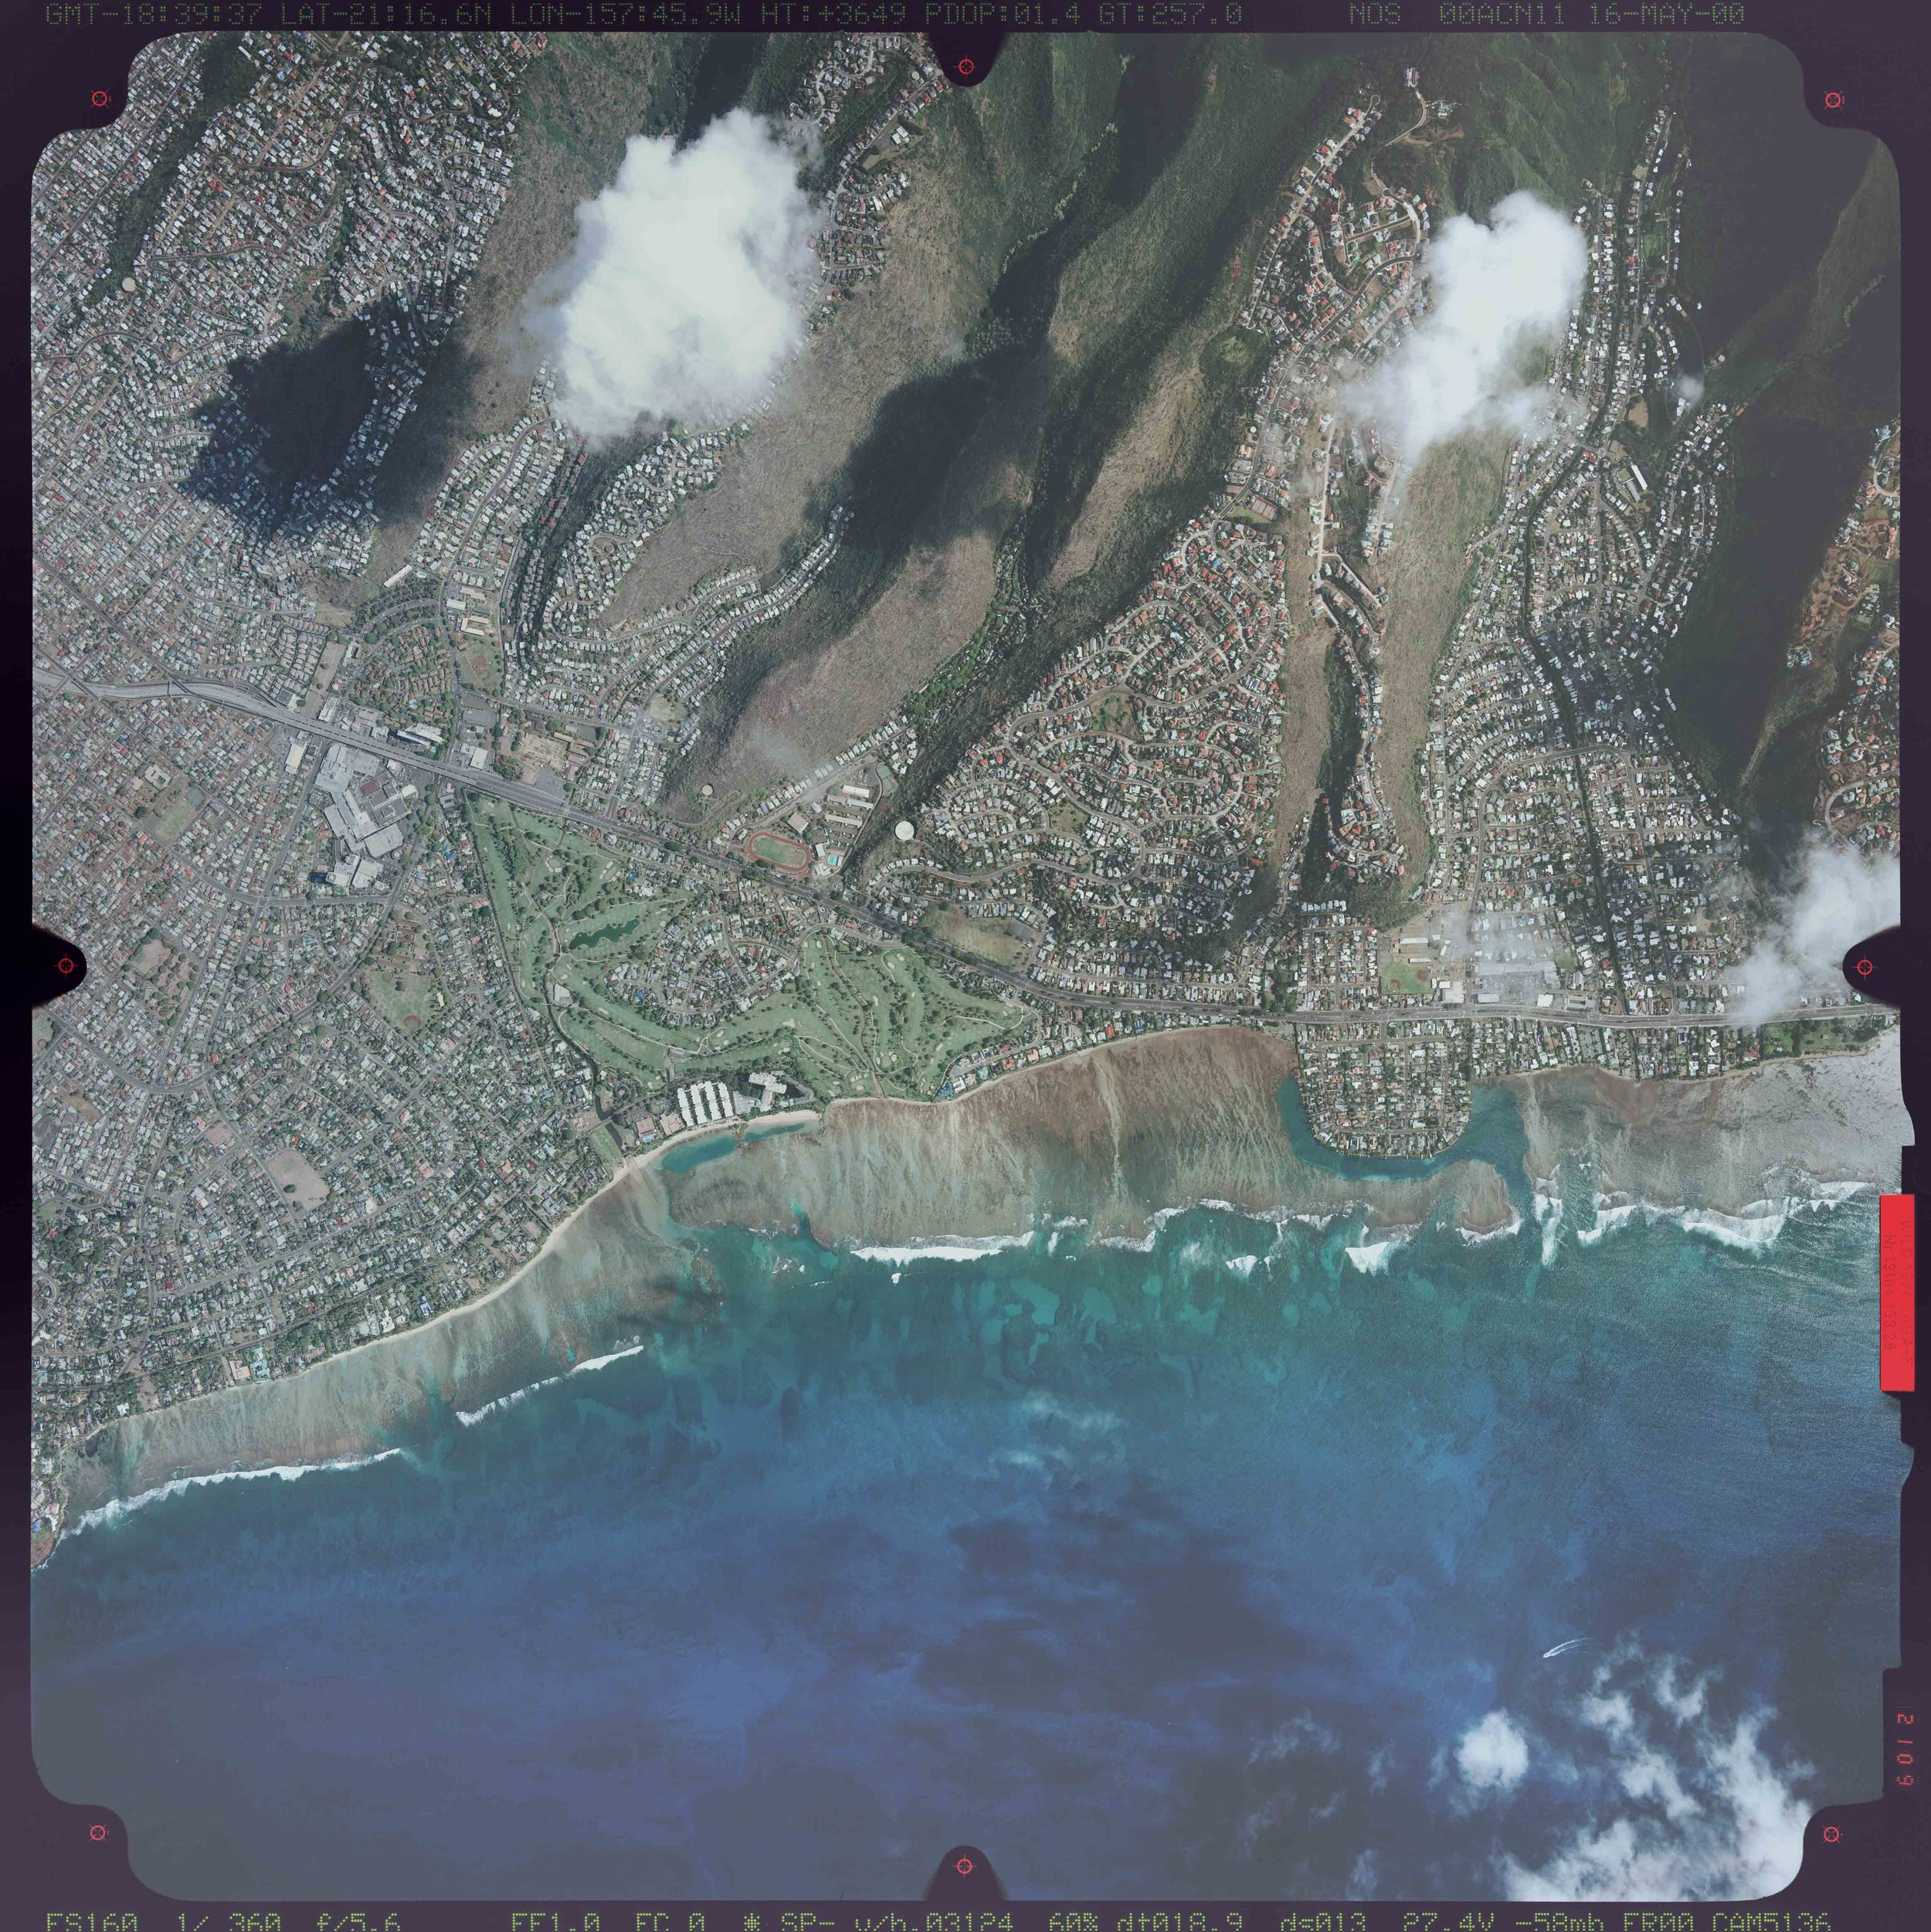 """Image 1: National Oceanic and Atmospheric Administration. """"Frame: 2109"""" [aerial photograph]. Scale - 1in:1km. Flight line No:018. 16/5/00"""